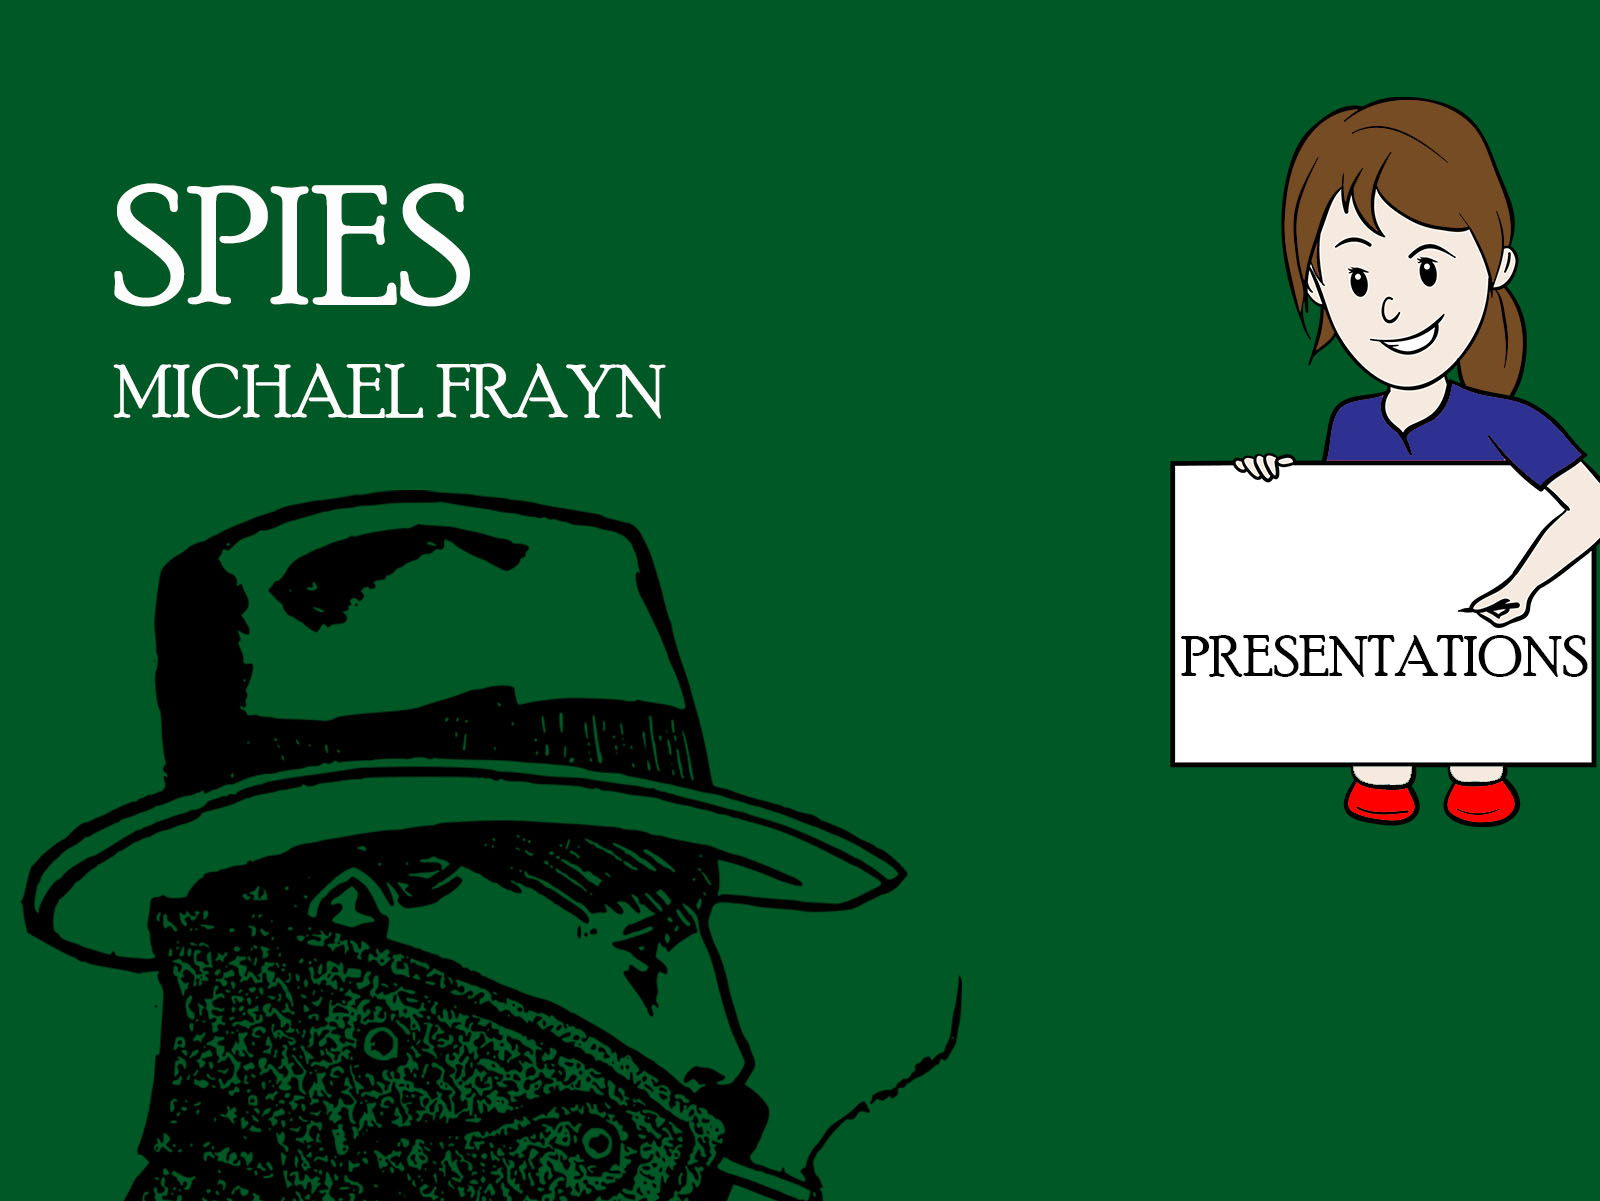 spies michael frayn characters